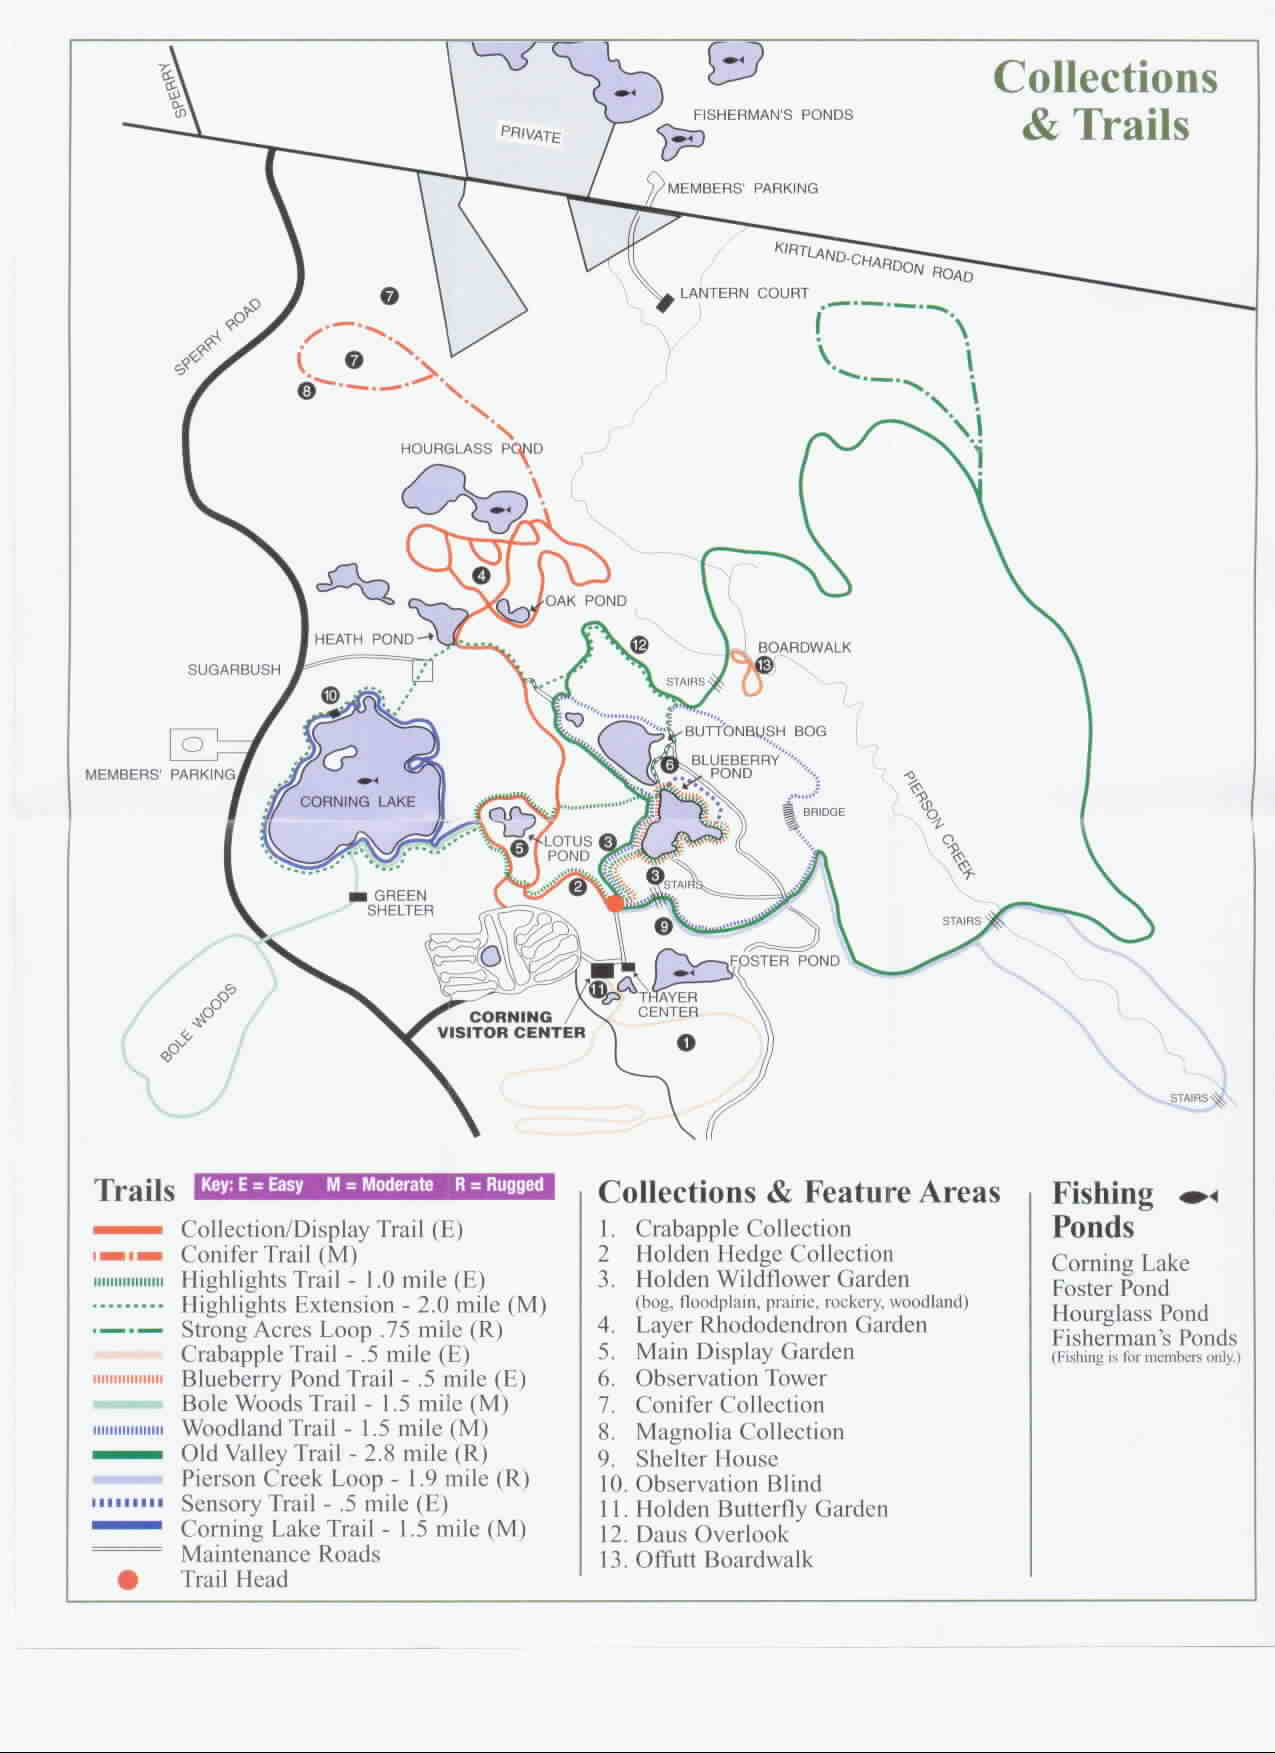 Holden Arboretum Trail Map and Collections